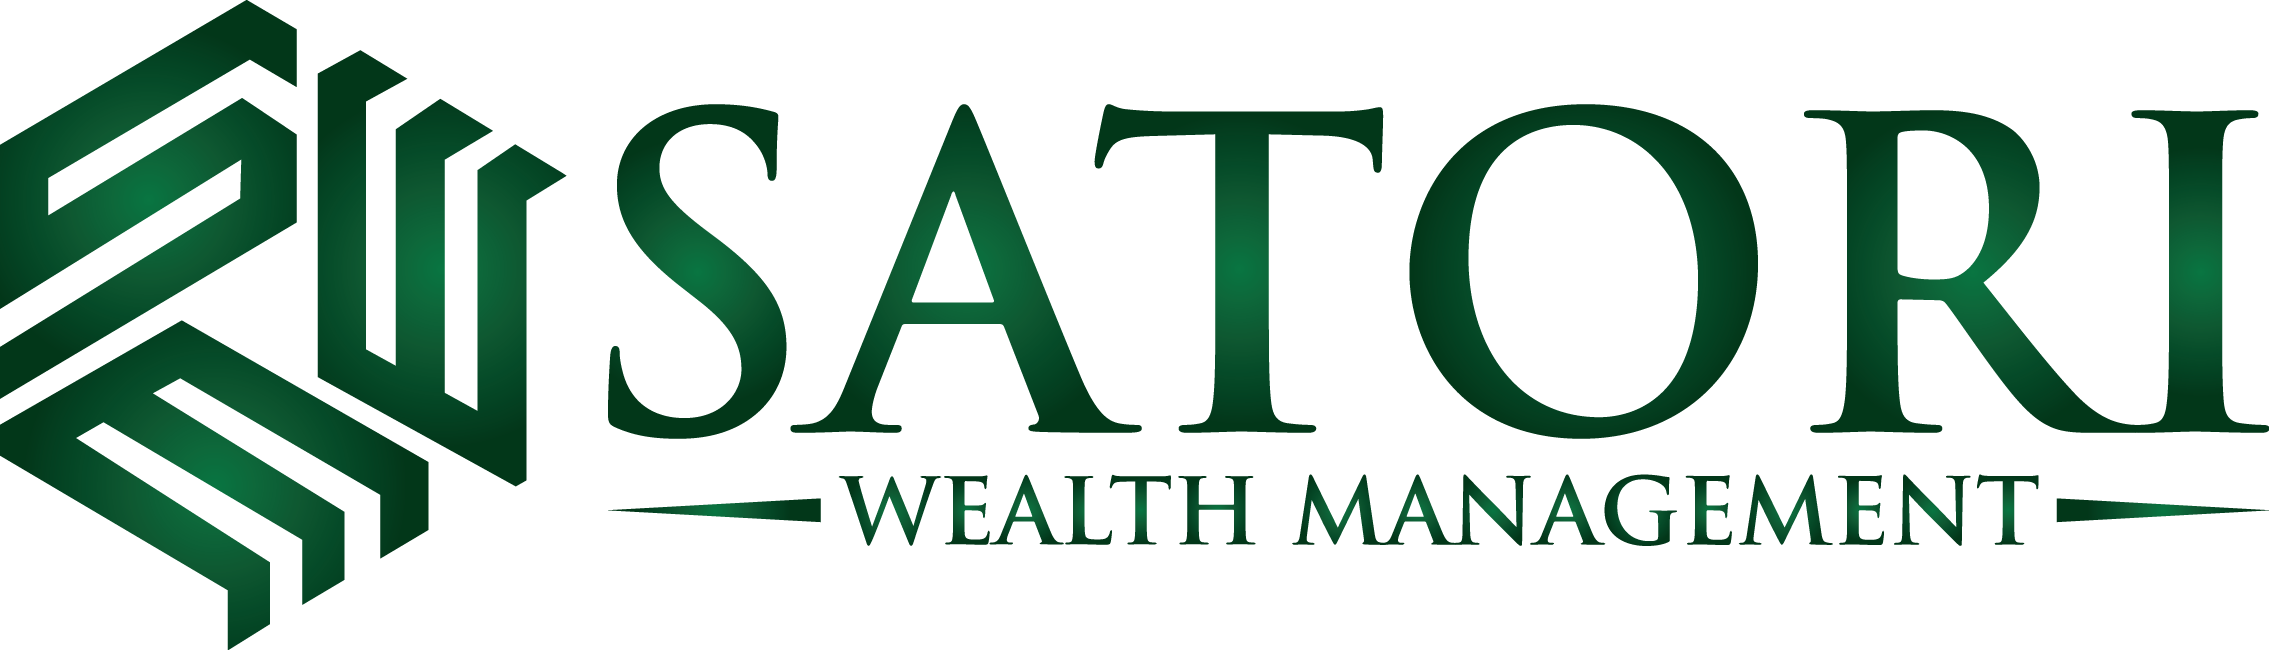 Satori Wealth Management, Inc.